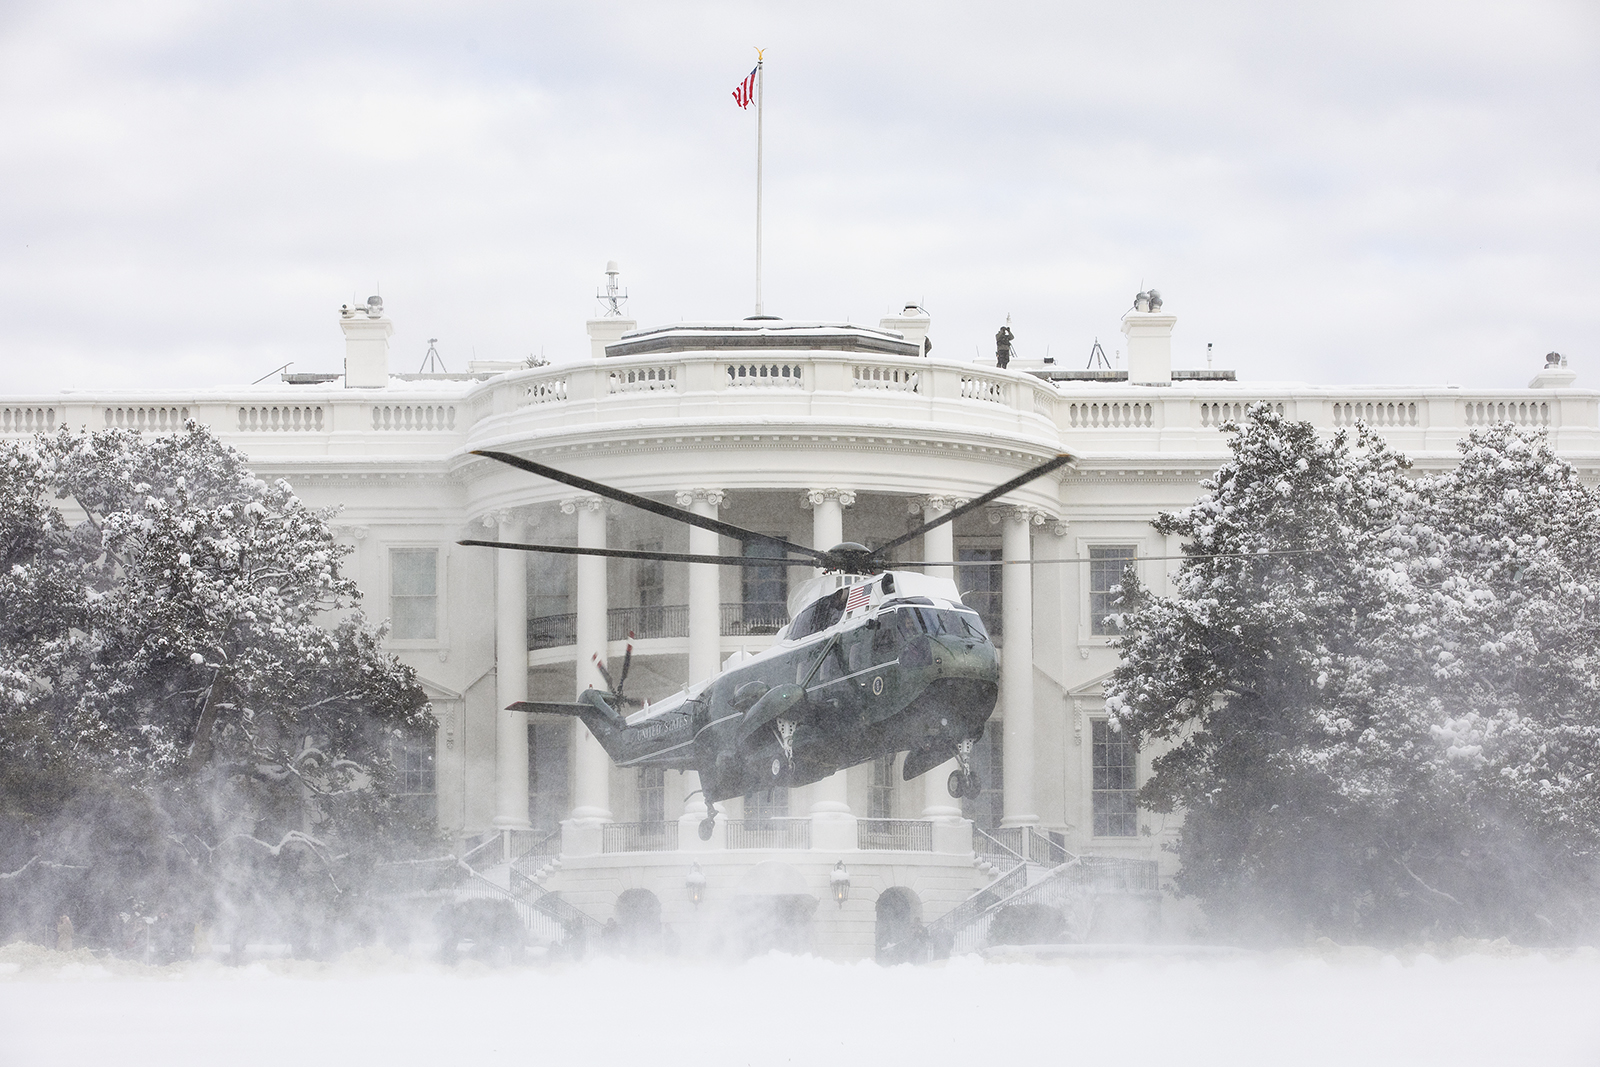 Free download high resolution image - free image free photo free stock image public domain picture -Marine One lands on the snow-covered South Lawn